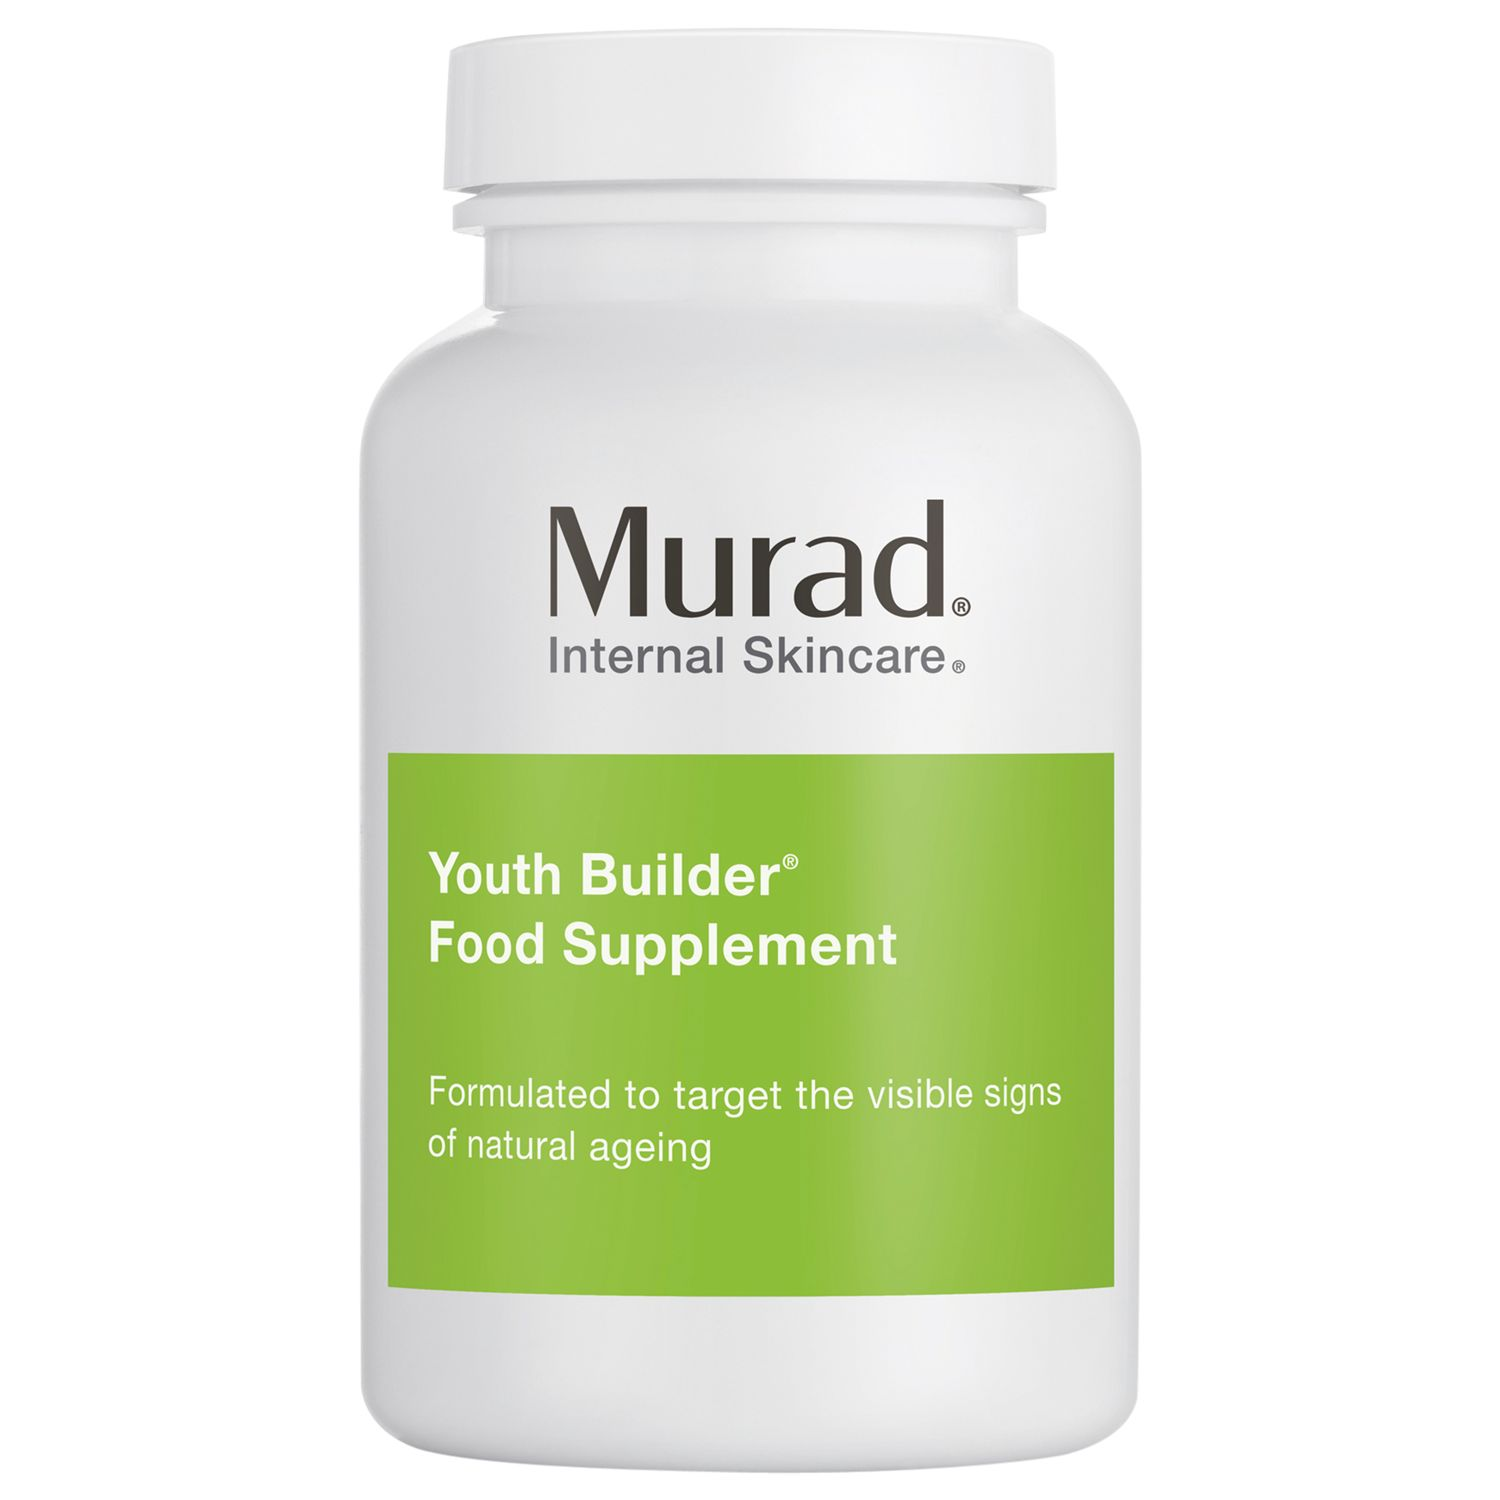 Murad Murad Youth Builder Food Supplement, 120 tablets